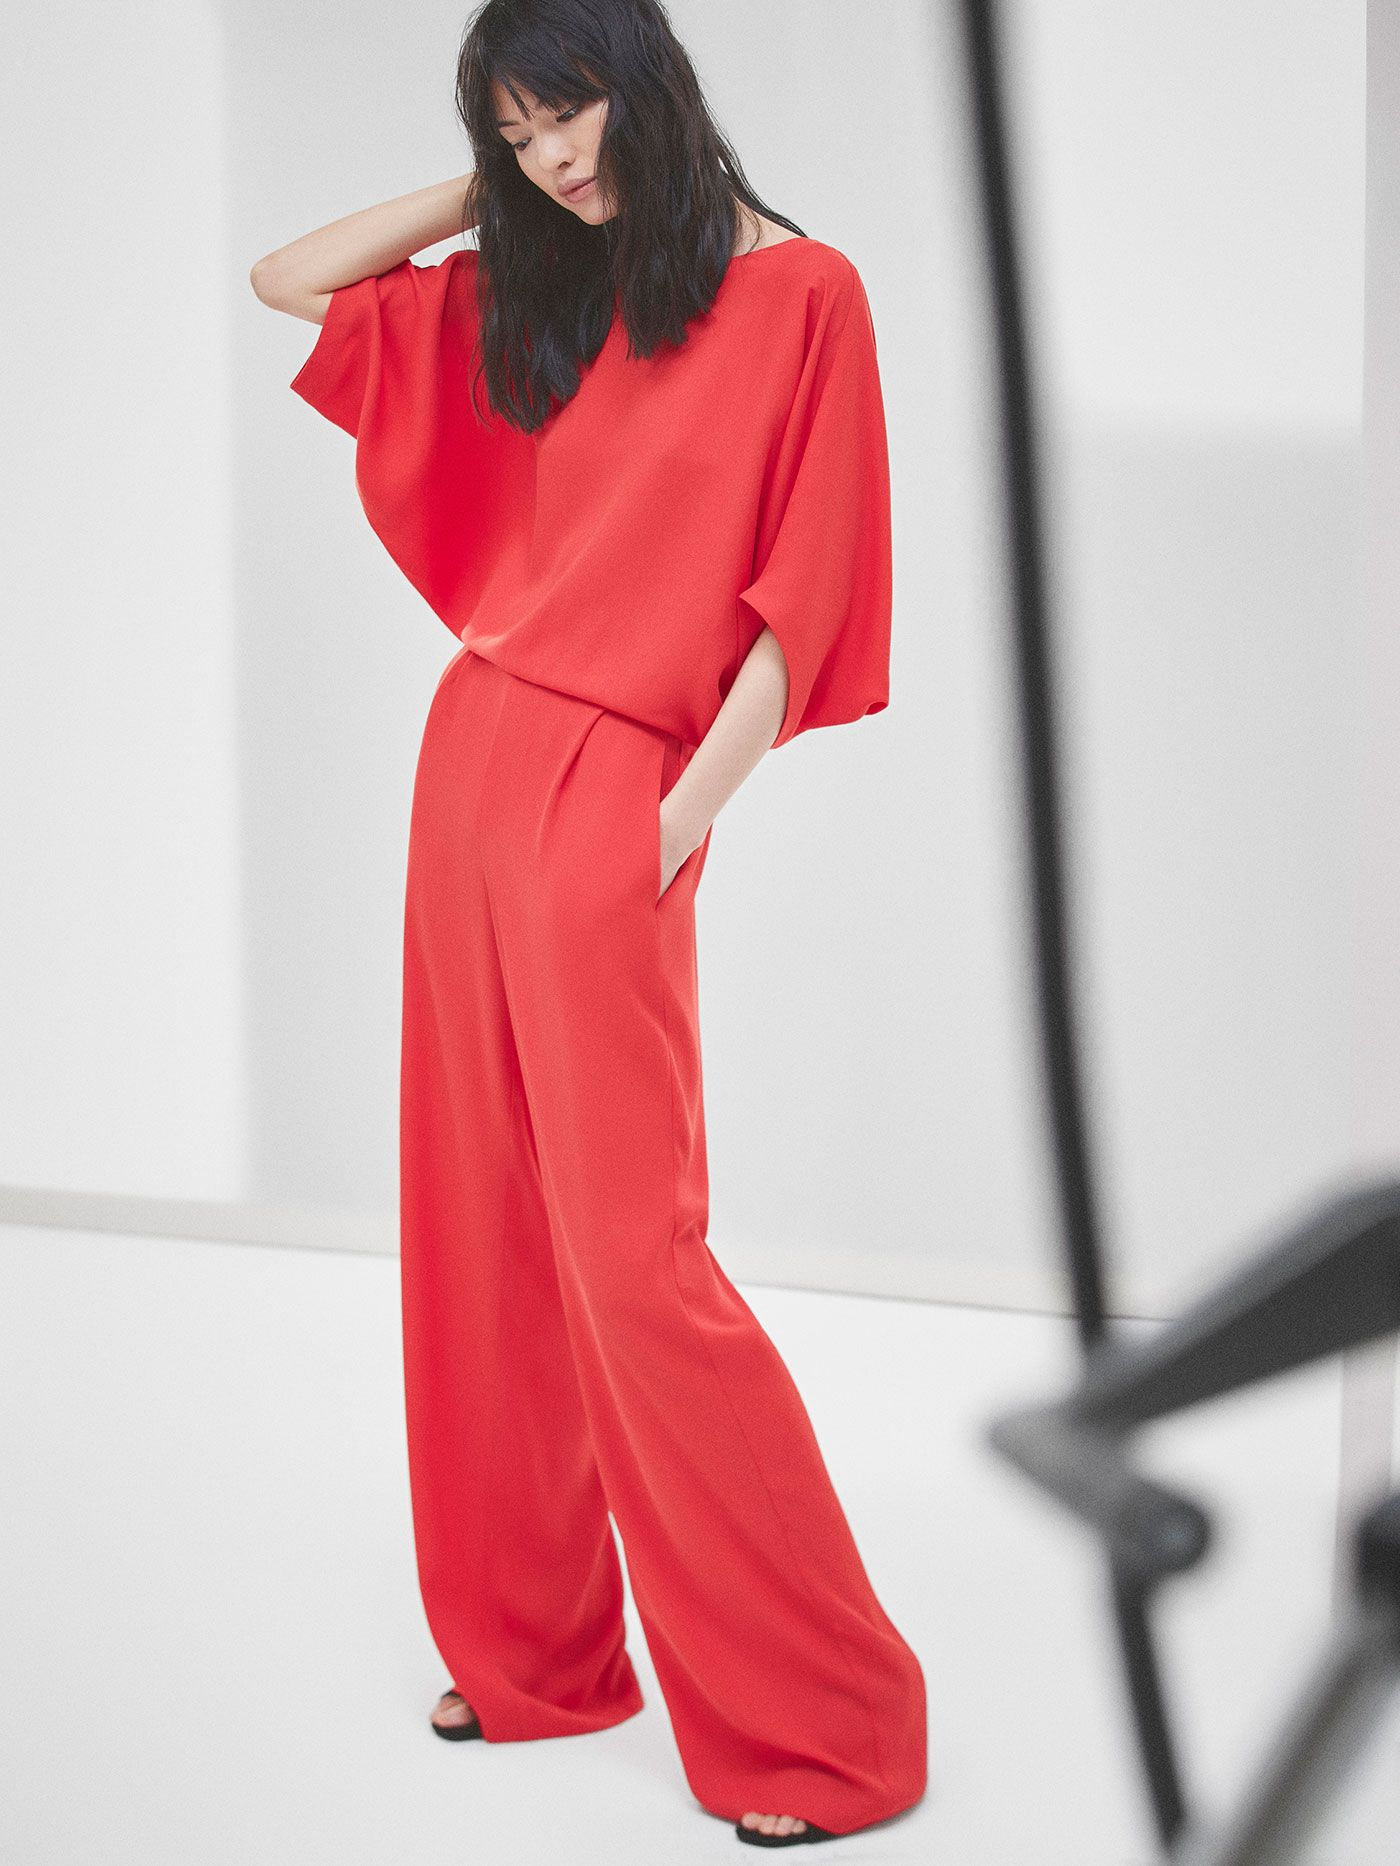 9747e41d4fb Autumn Spring summer 2017 Women´s RED JUMPSUIT at Massimo Dutti for 150.  Effortless elegance!